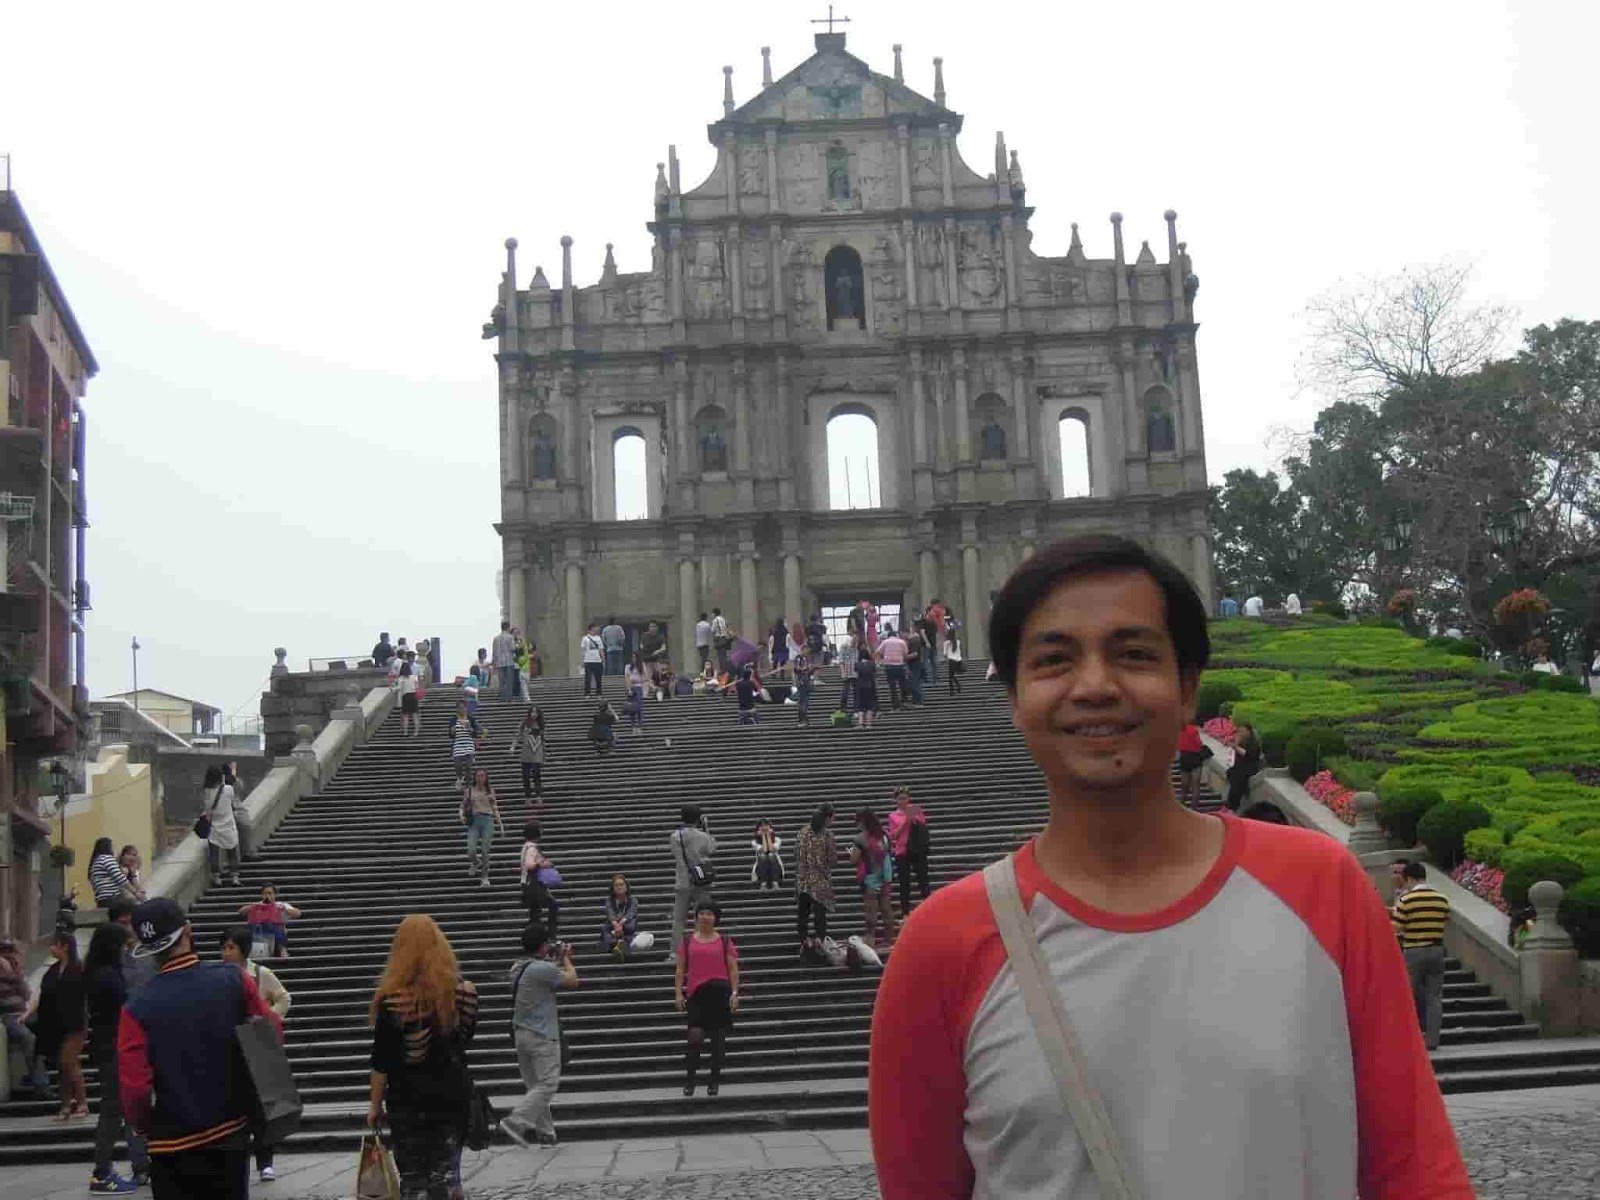 A picture at the well-known Ruins of St. Paul's in Macau